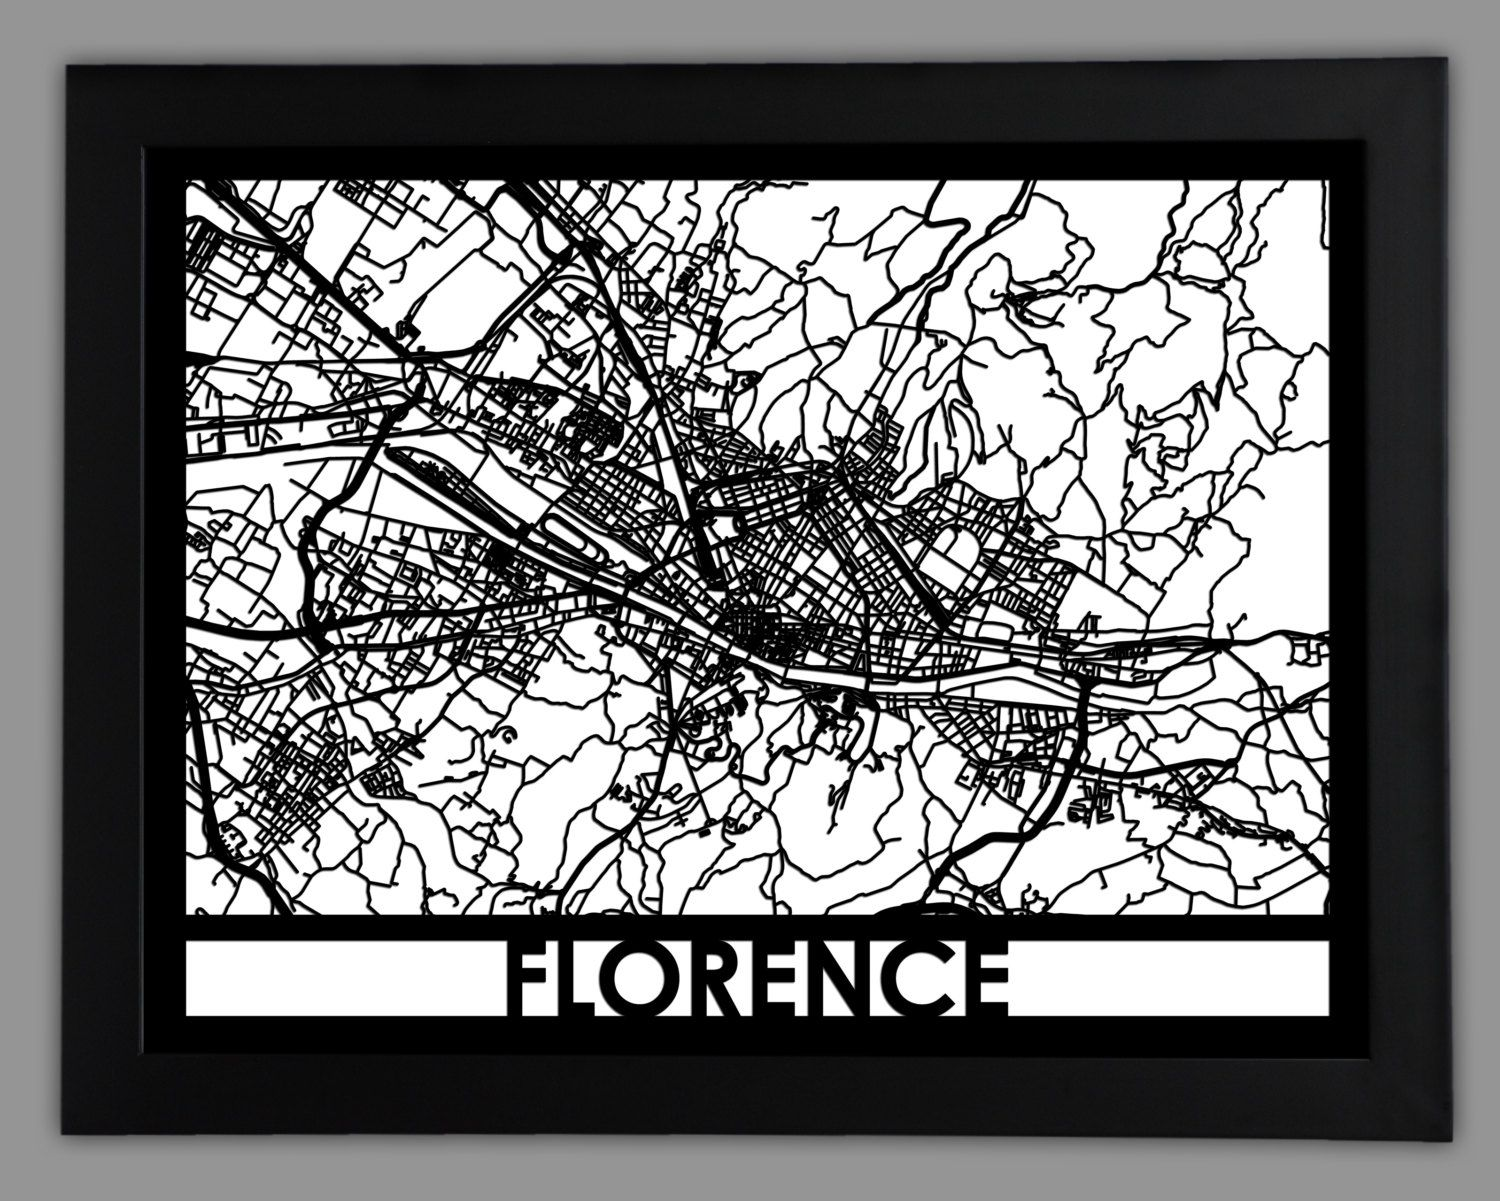 Florence laser cut map 18x24 framed city map city wall art florence laser cut map 18x24 framed city map city wall art amipublicfo Choice Image